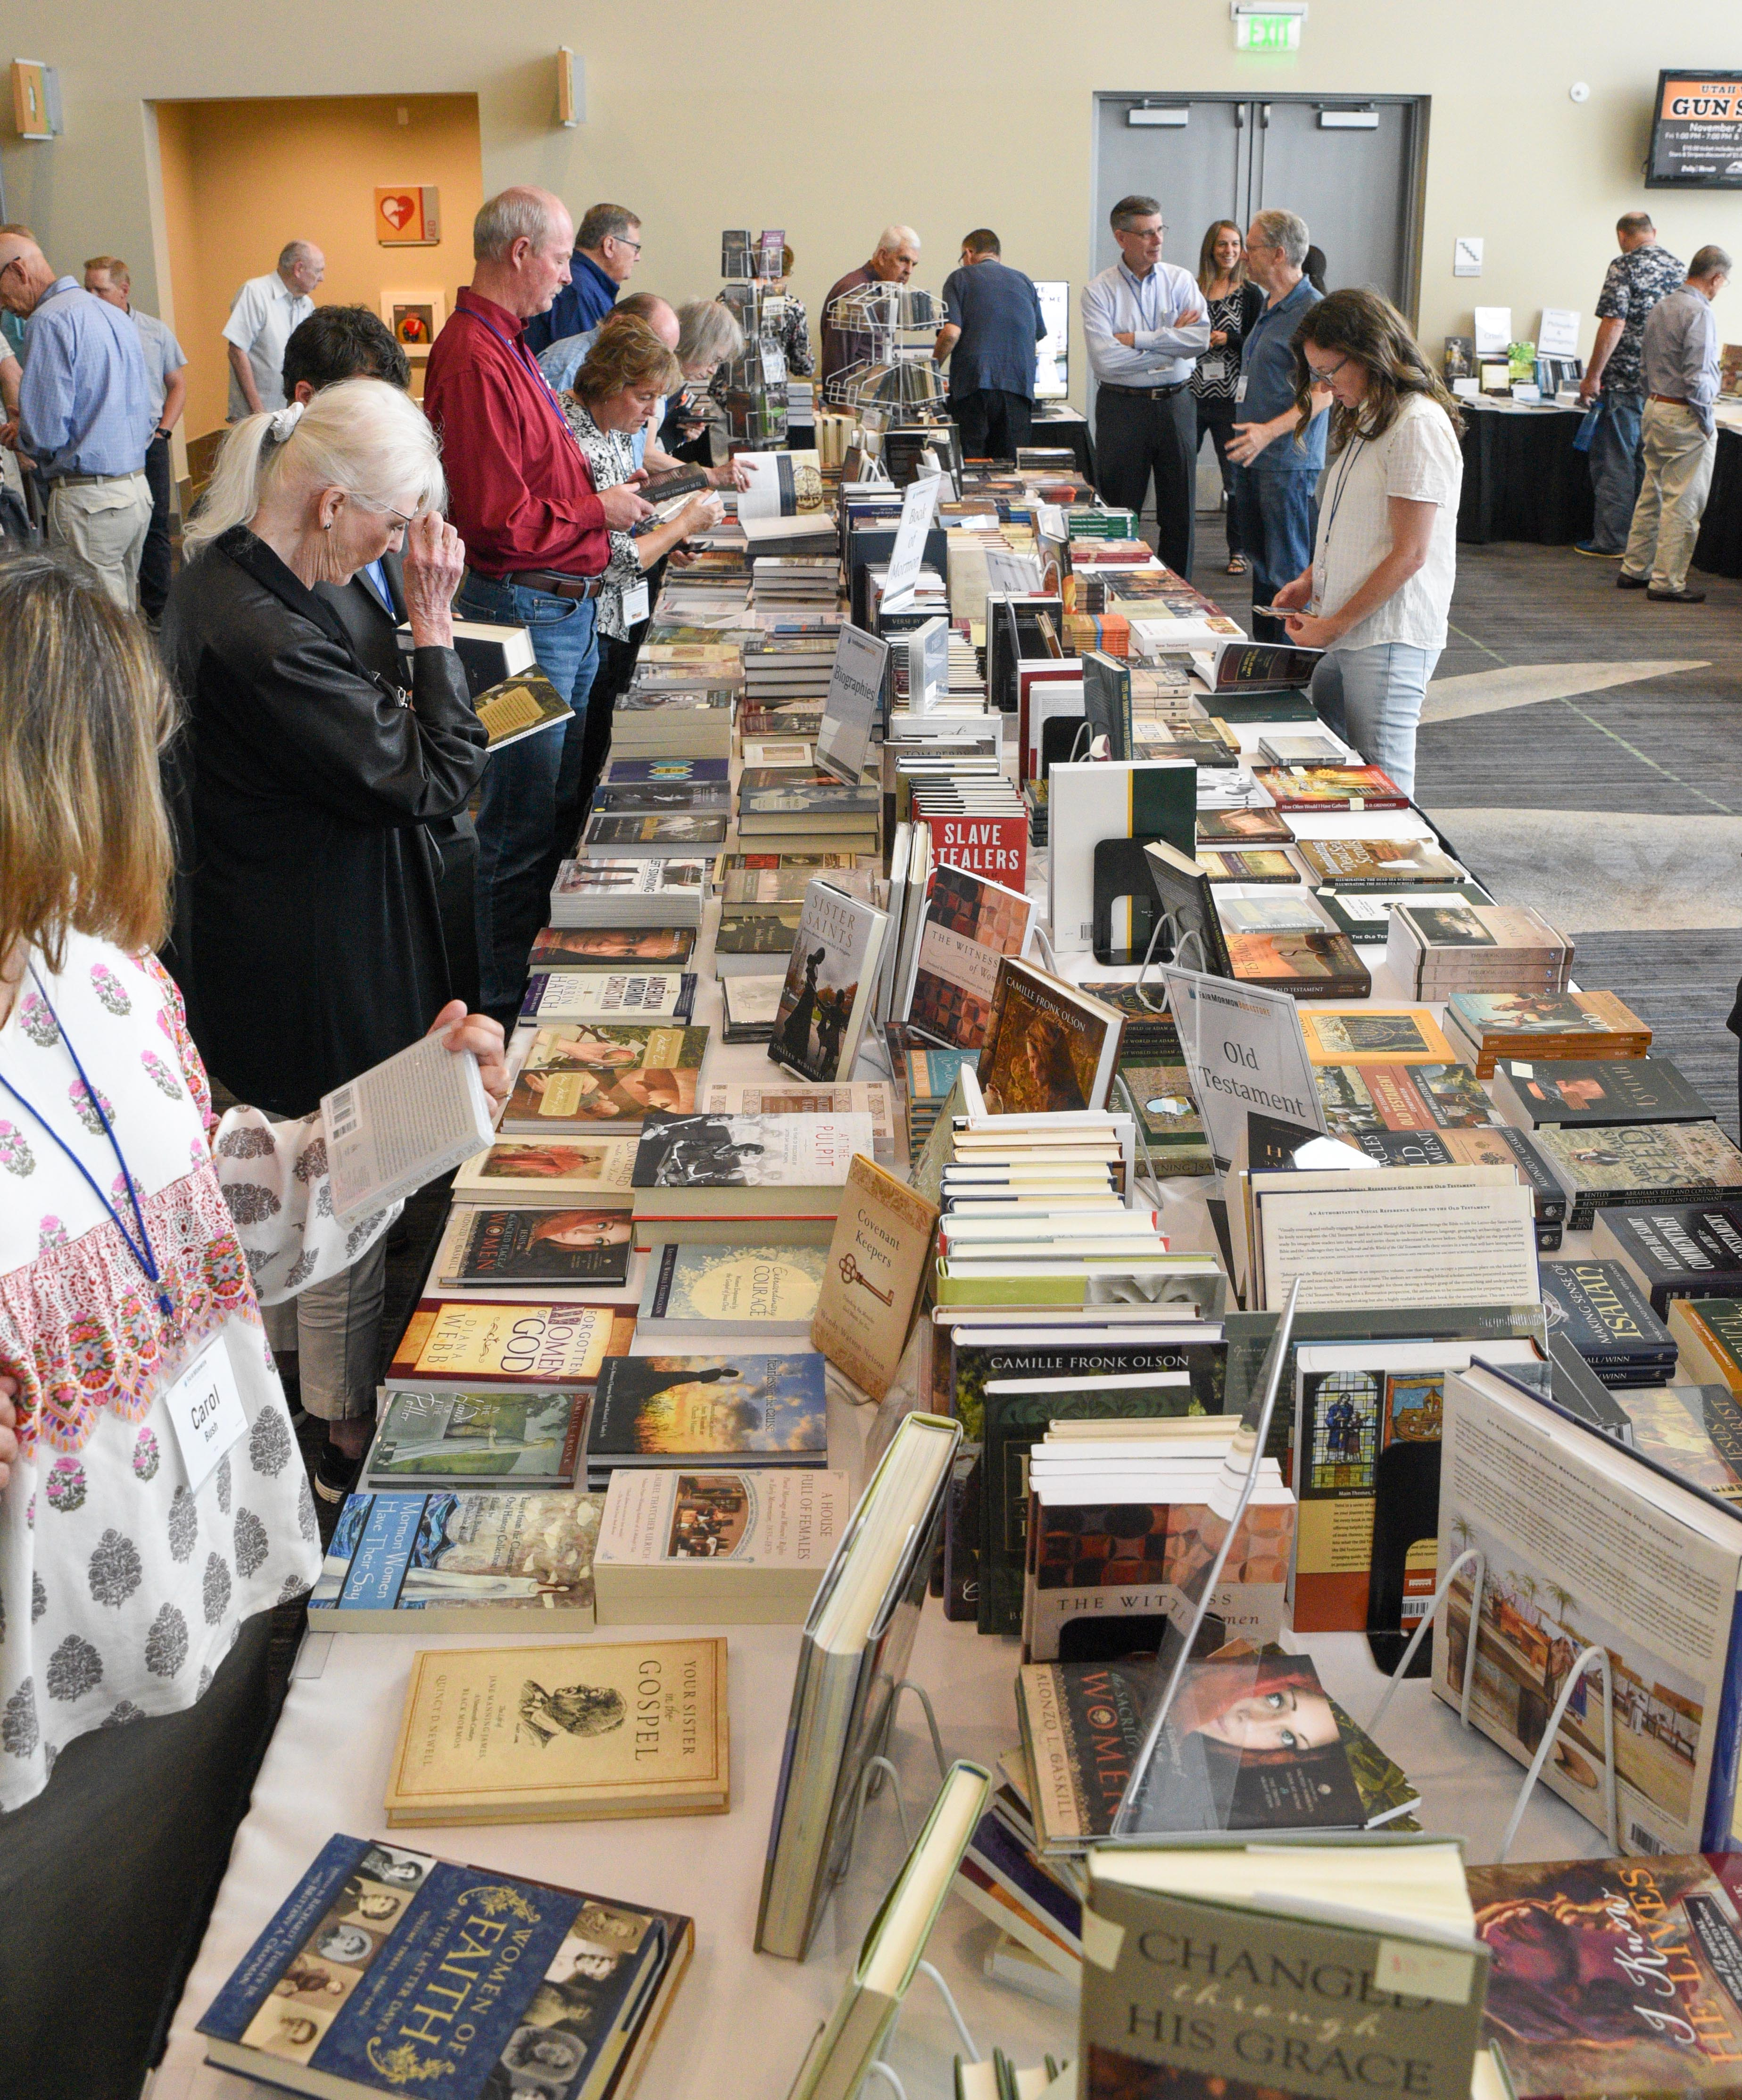 Attendees at the FairMormon conference on Friday, Aug. 9, 2019 at the Utah Valley Convention Center in Provo, Utah walk through the pop-up bookshop in between conference sessions.